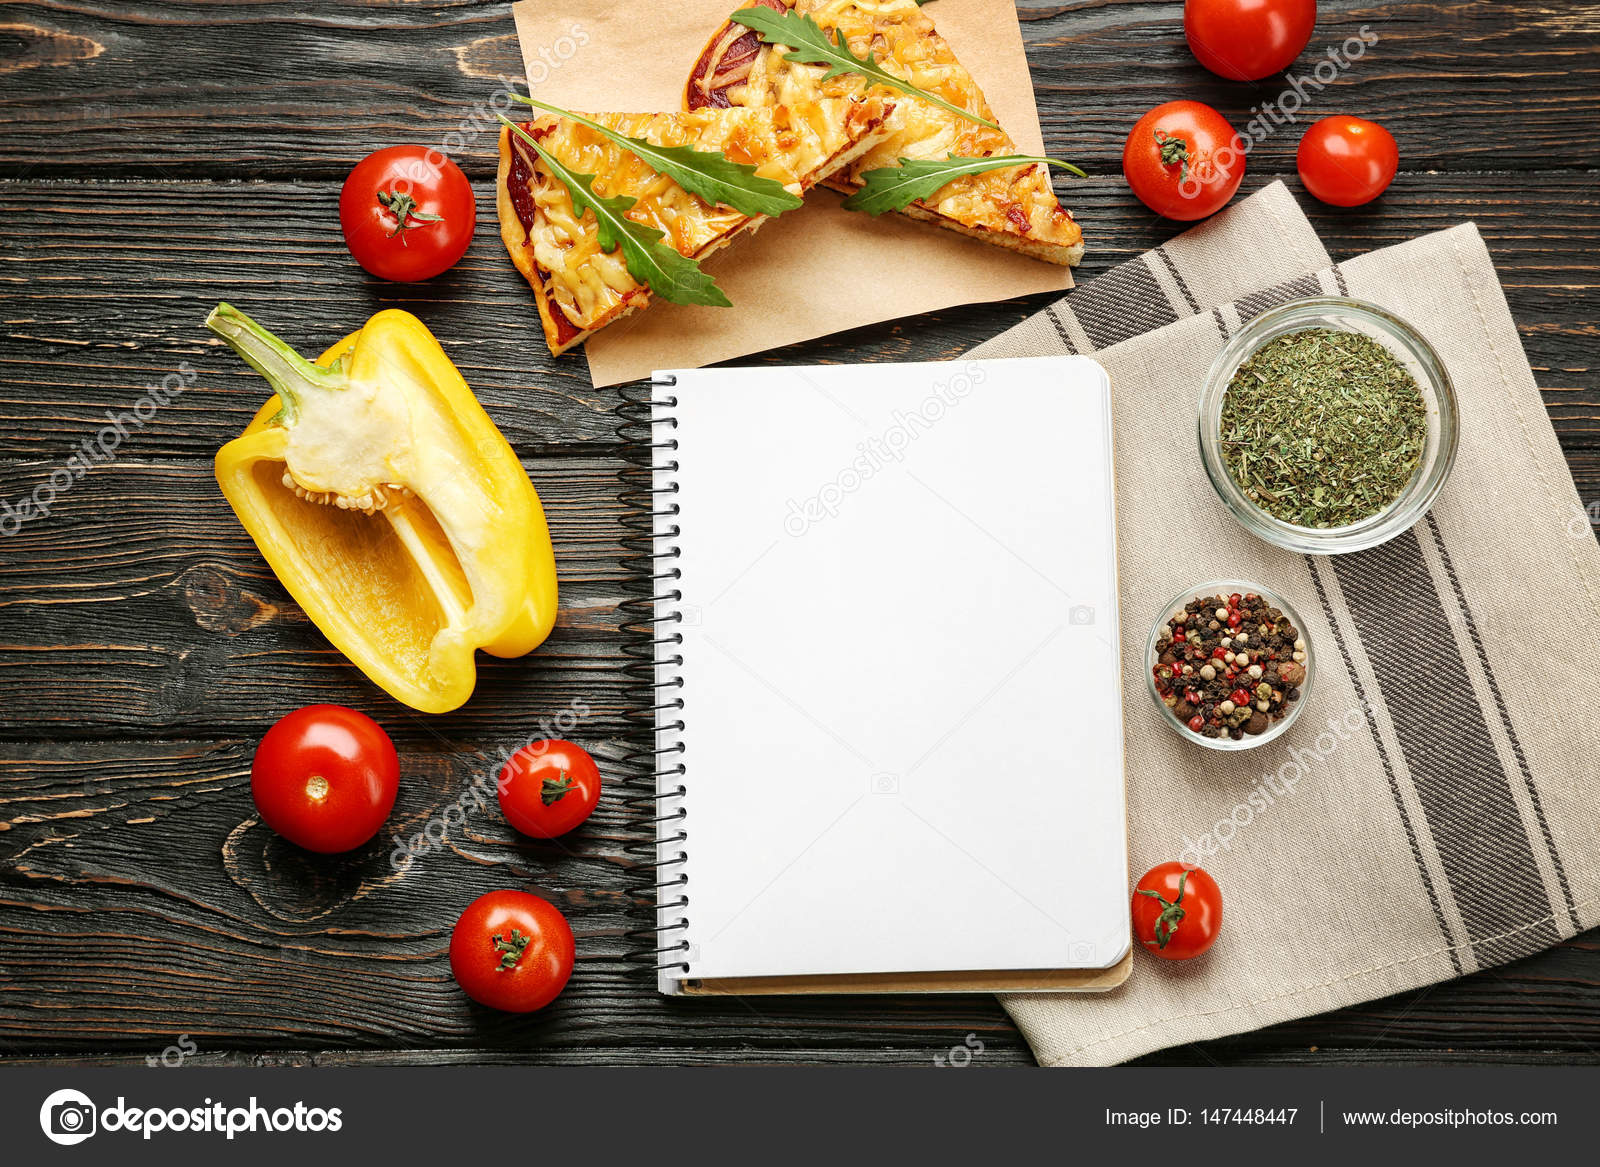 Still life with ingredients for pizza and recipe notebook on wooden still life with ingredients for pizza and recipe notebook on wooden table top view forumfinder Image collections